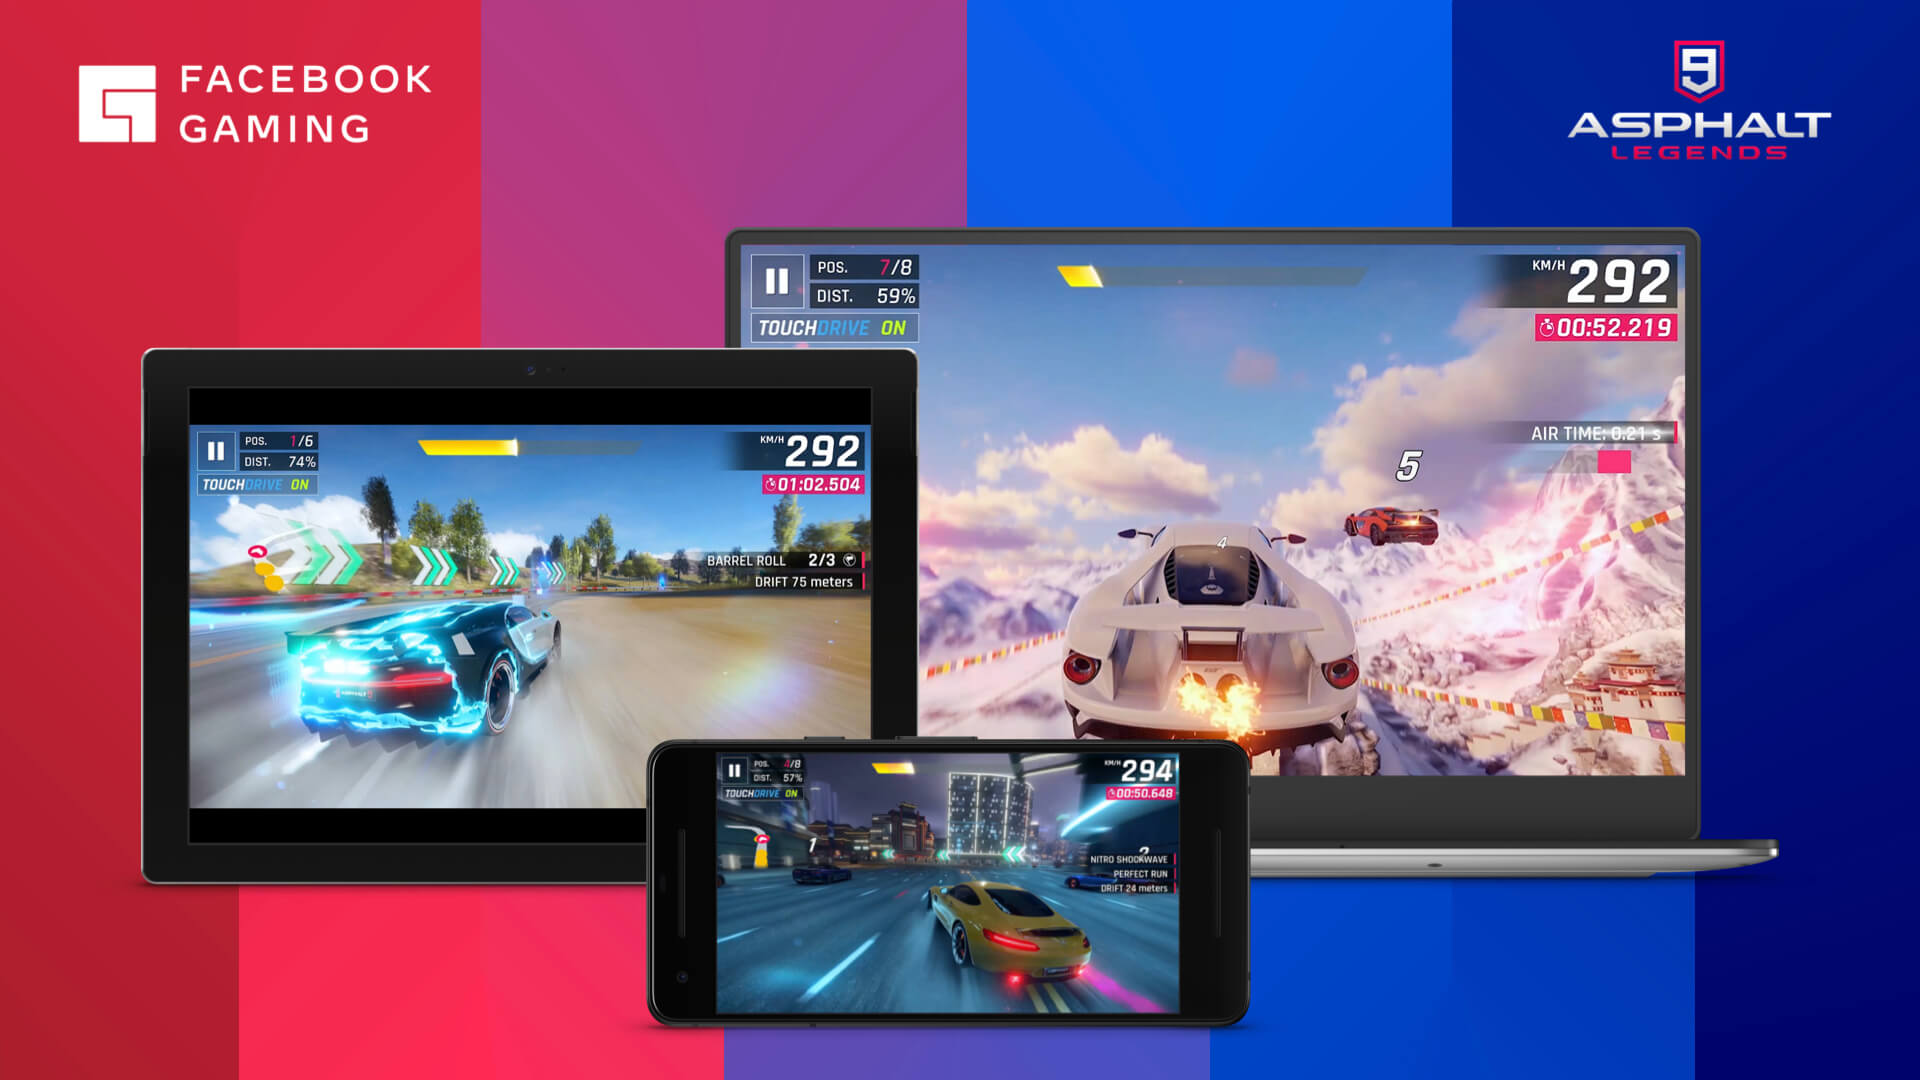 Facebook launches Cloud Gaming Service: Things you should know